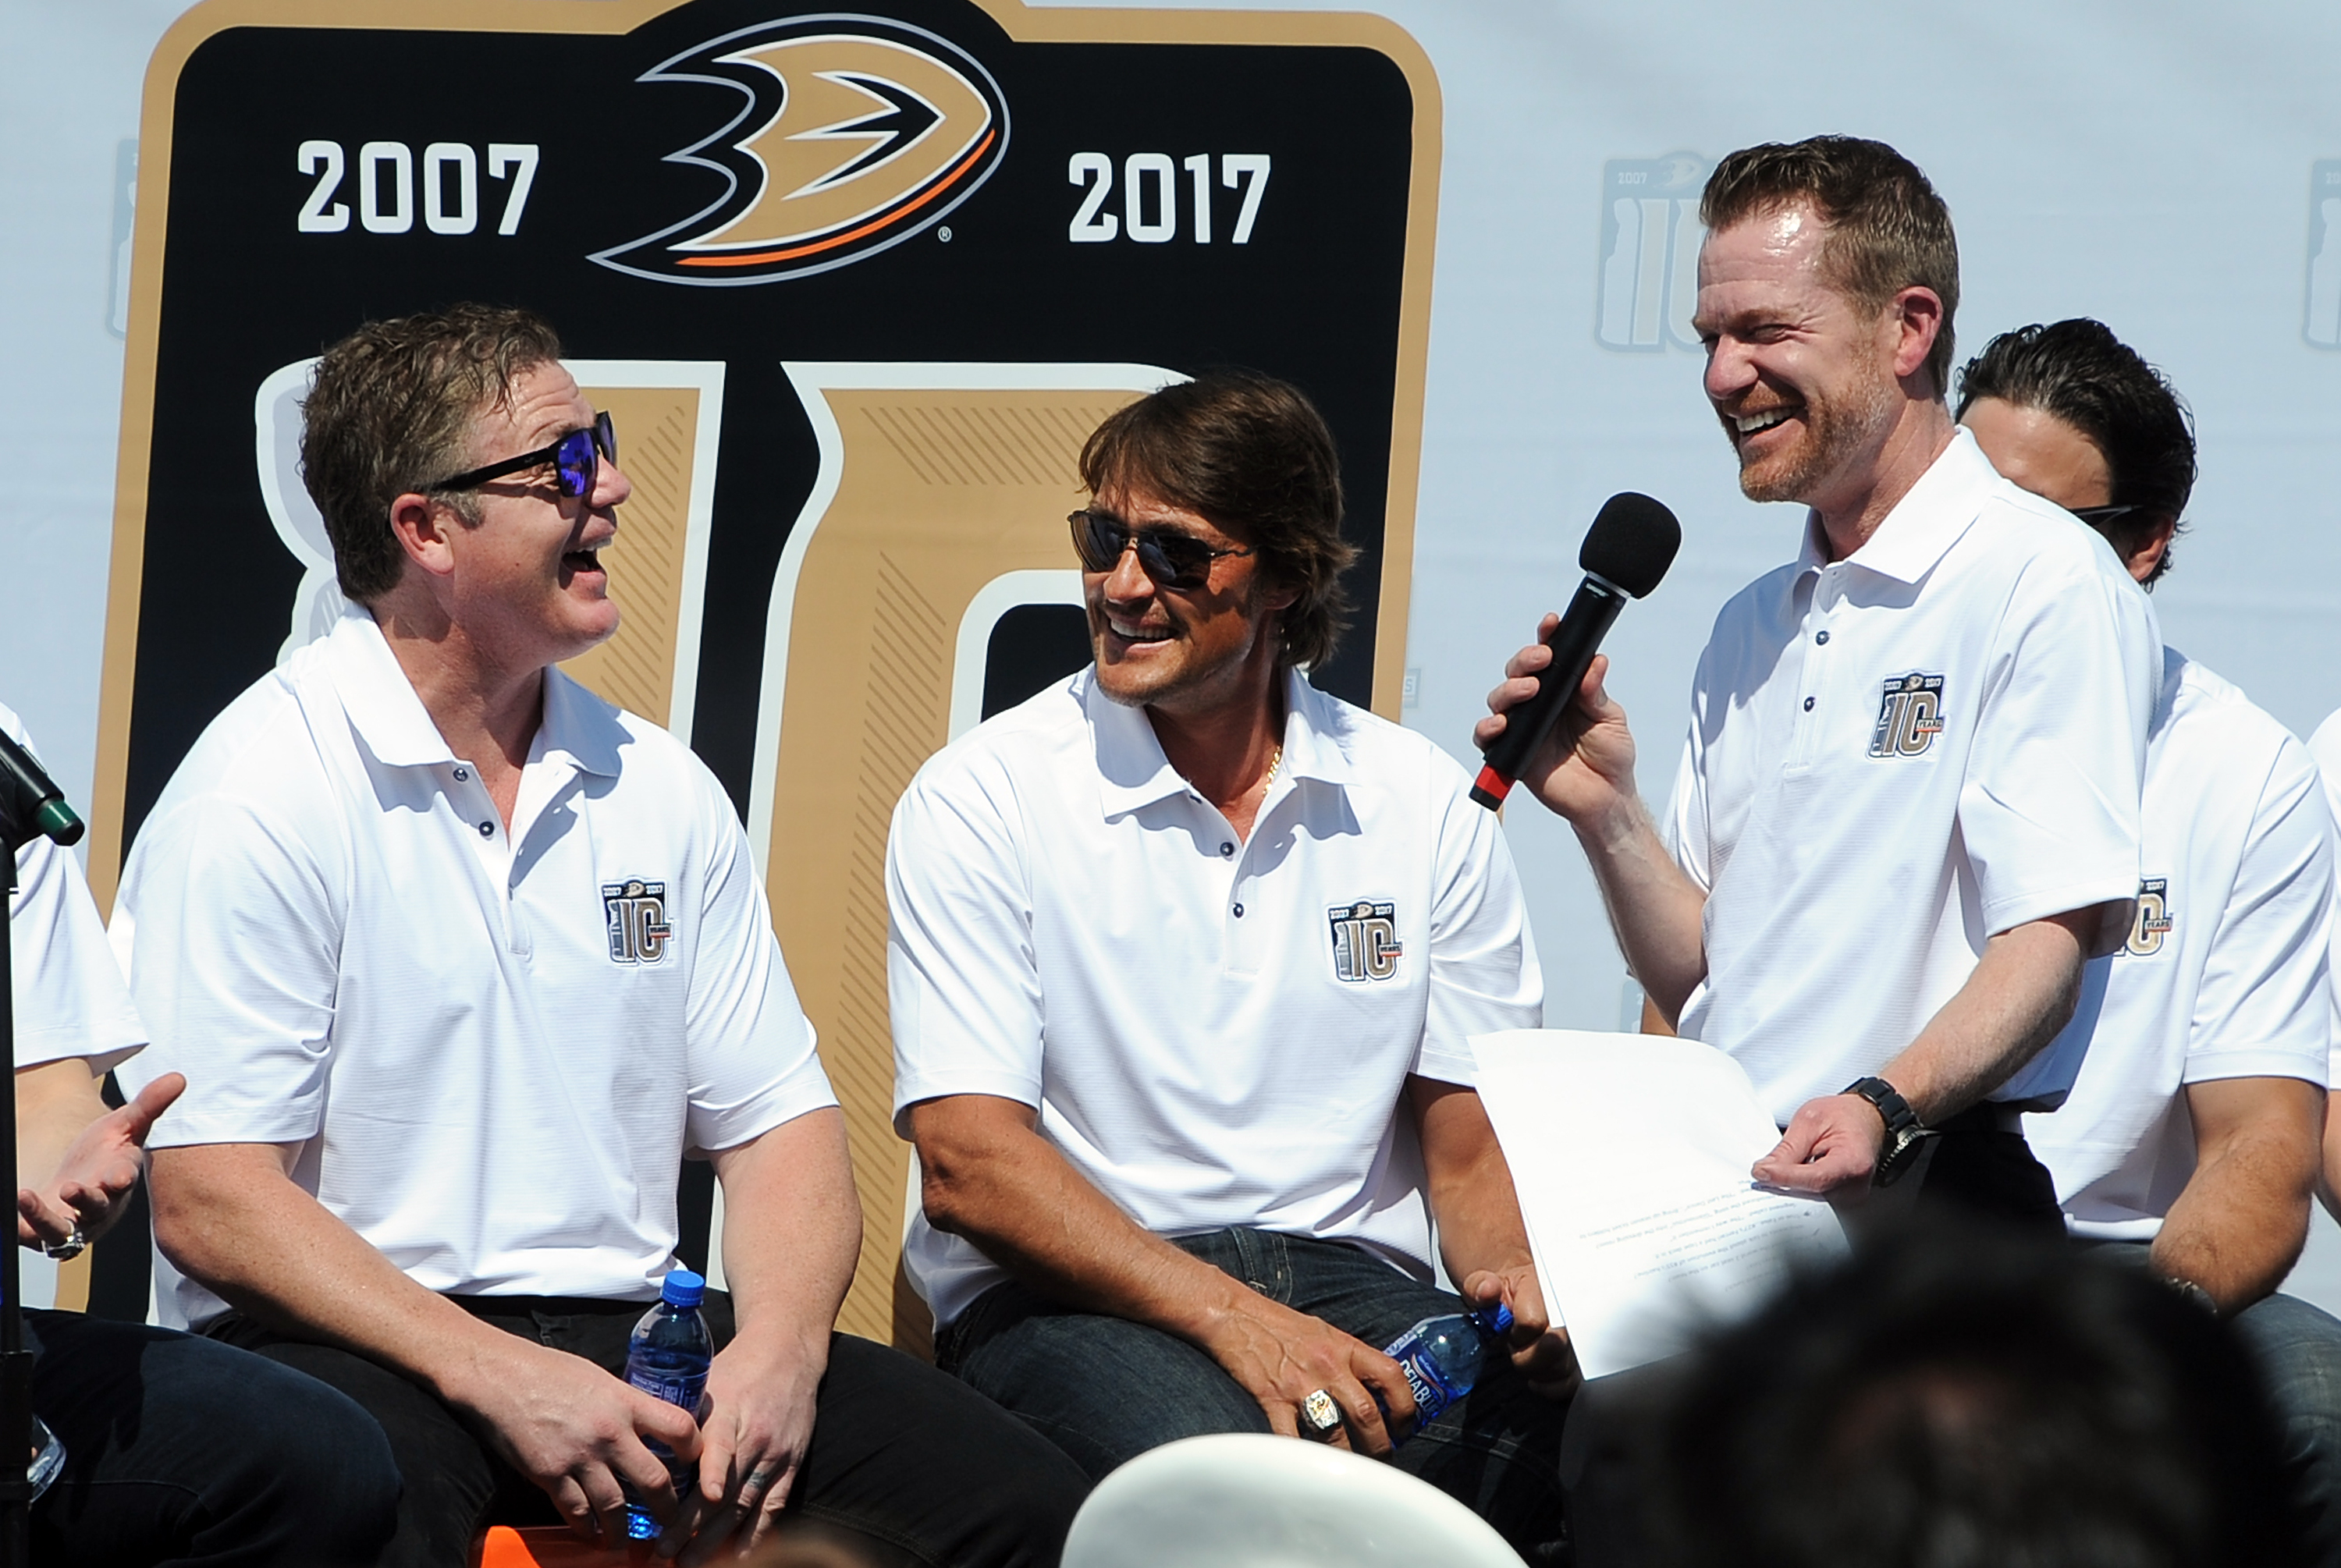 Brad May (left) answers a question from Ducks announcer Ken French as Teemu Selanne looks on during a fan Q&A session last week for the 2007 Stanley Cup champions (Photo courtesy Anaheim Ducks).